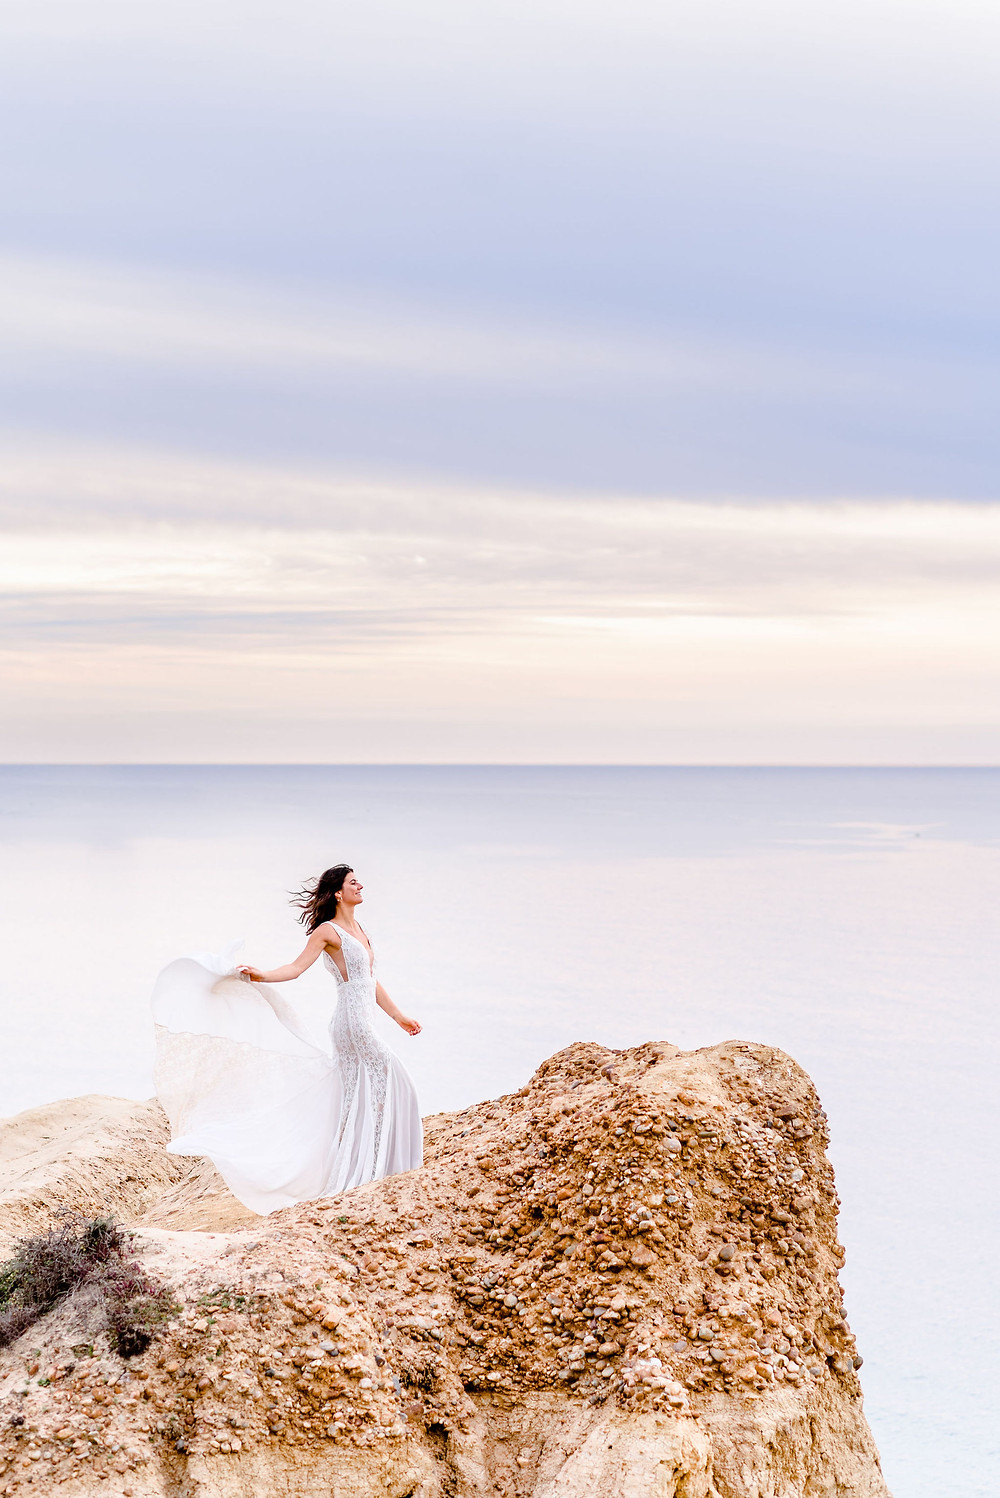 bride holding up train of dress on a cliffside in california with a purple sunset in background